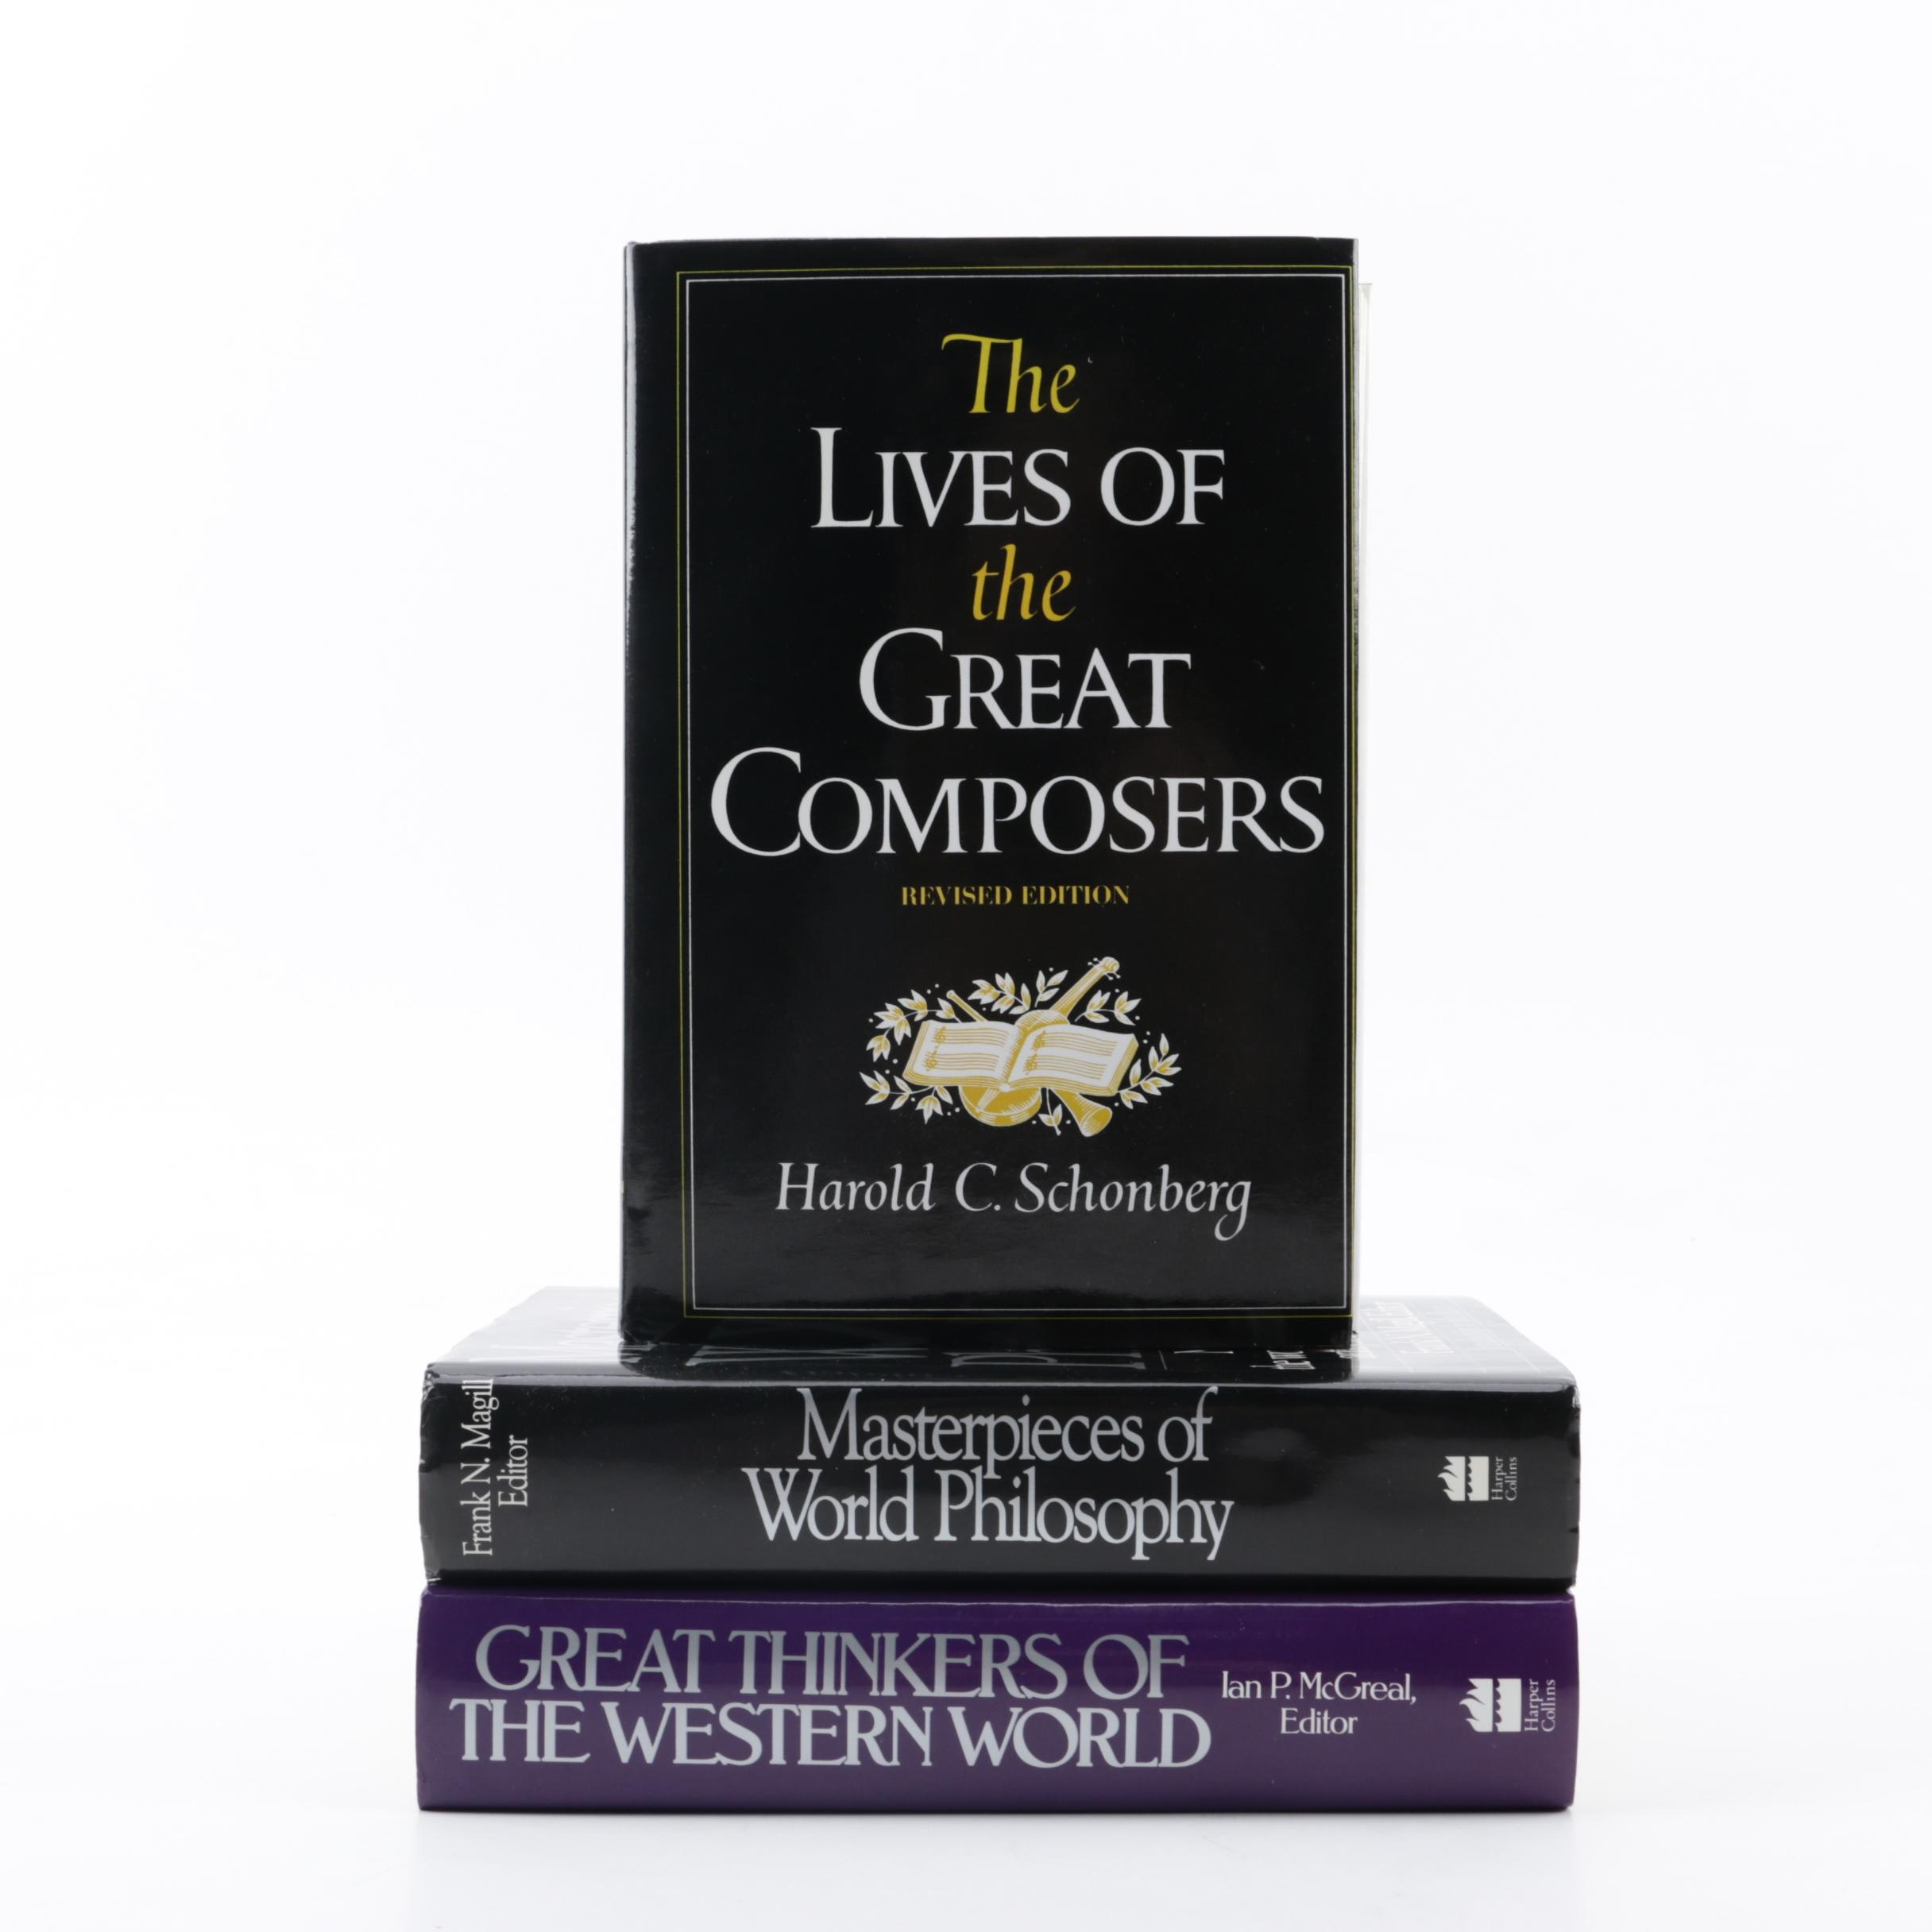 """Nonfiction and Philosophy Books featuring """"The Lives of the Great Composers"""""""